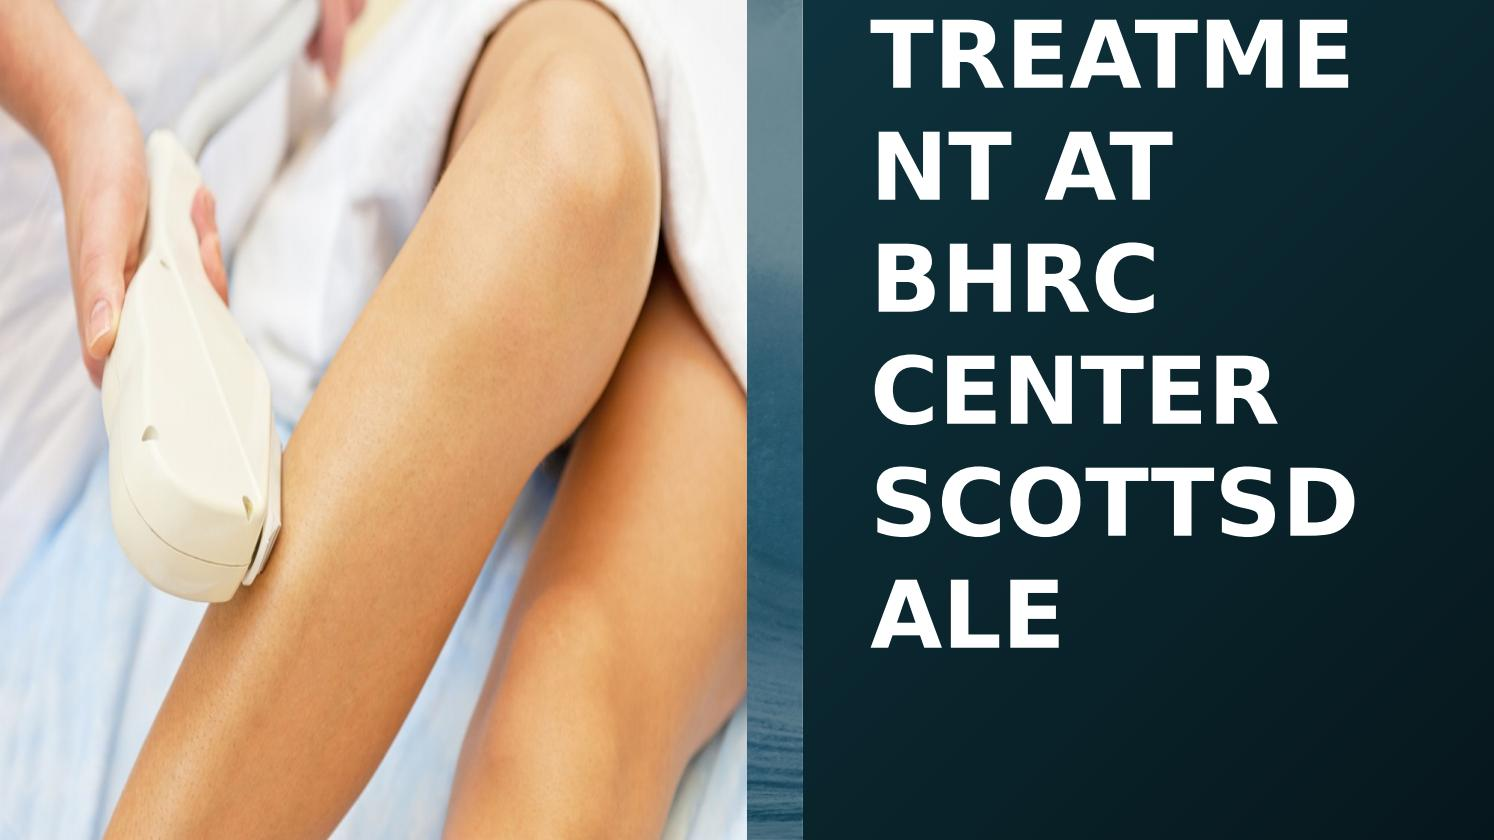 Get the best laser hair removal treatment at bhrc center scottsdale by BHRC - issuu Get the best laser hair removal treatment at bhrc center scottsdale - 웹